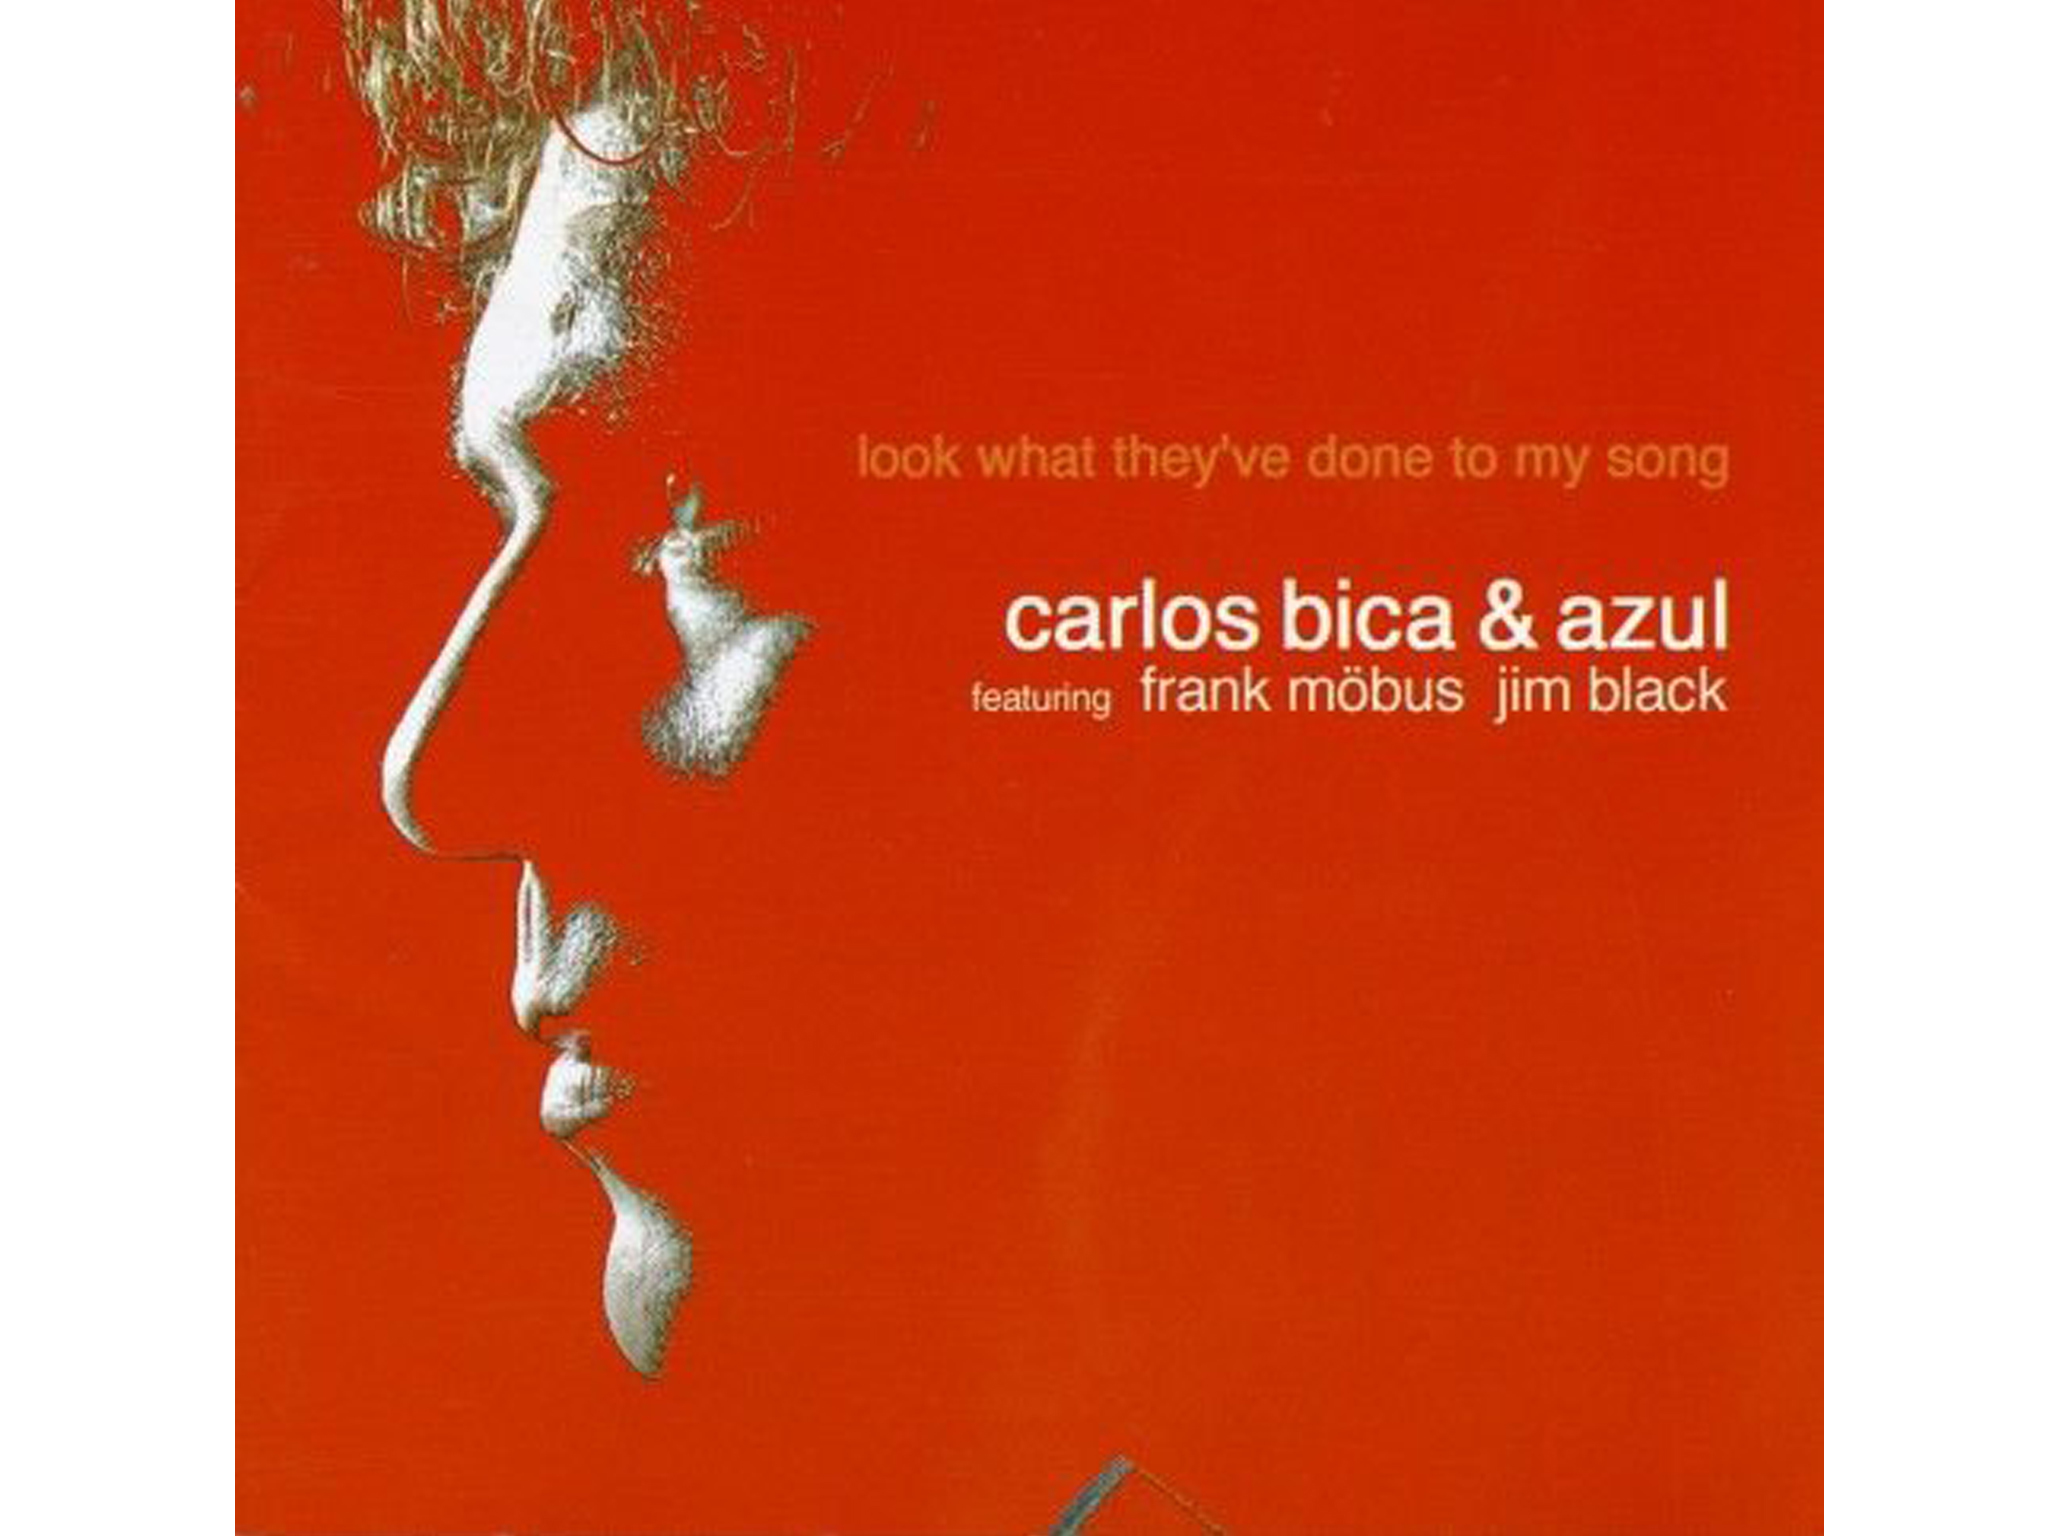 Carlos Bica & Azul - Look what they've done to my Song